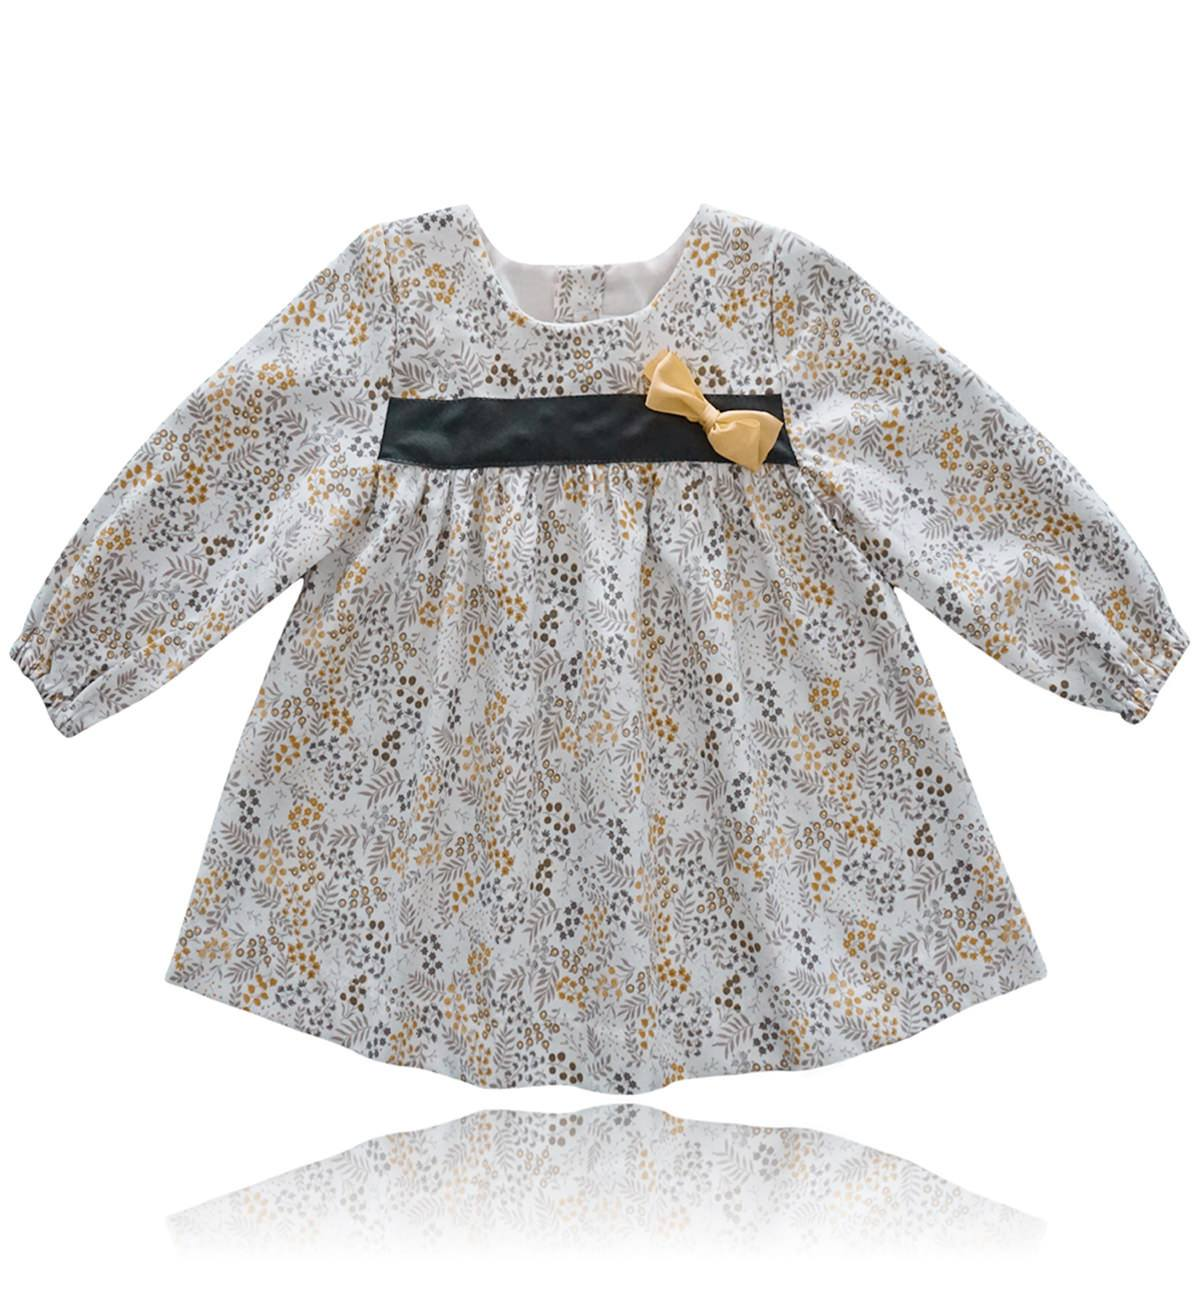 Spanish baby clothes | baby Dress | Yellow & brown floral print dress |babymaC  - 1